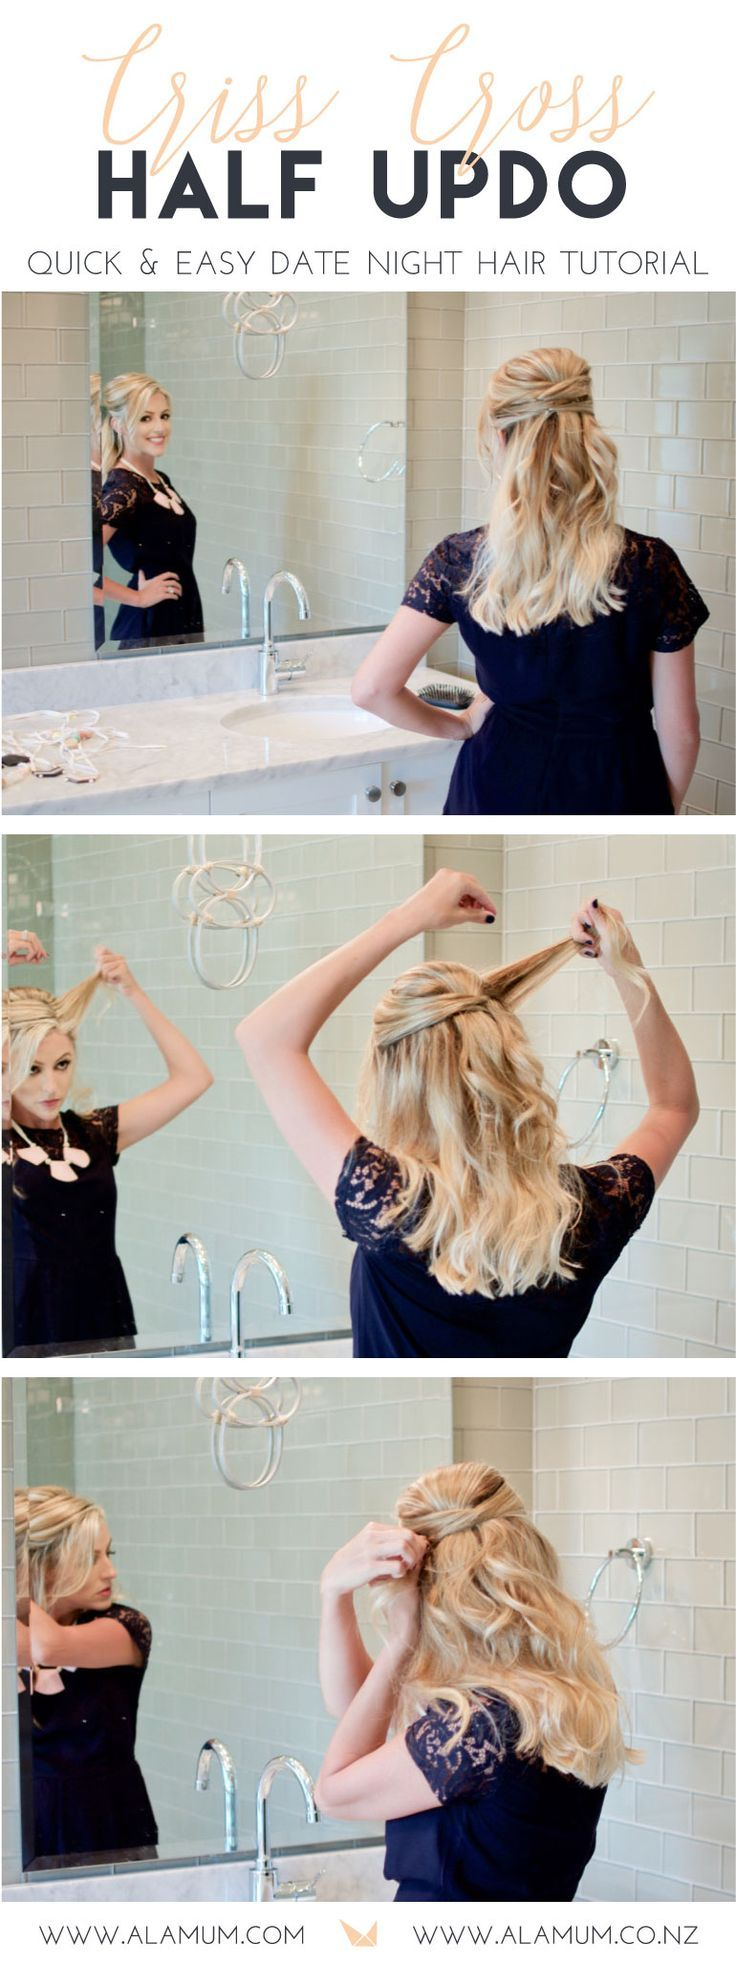 Need an easy hair tutorial for date night this crisscross half updo